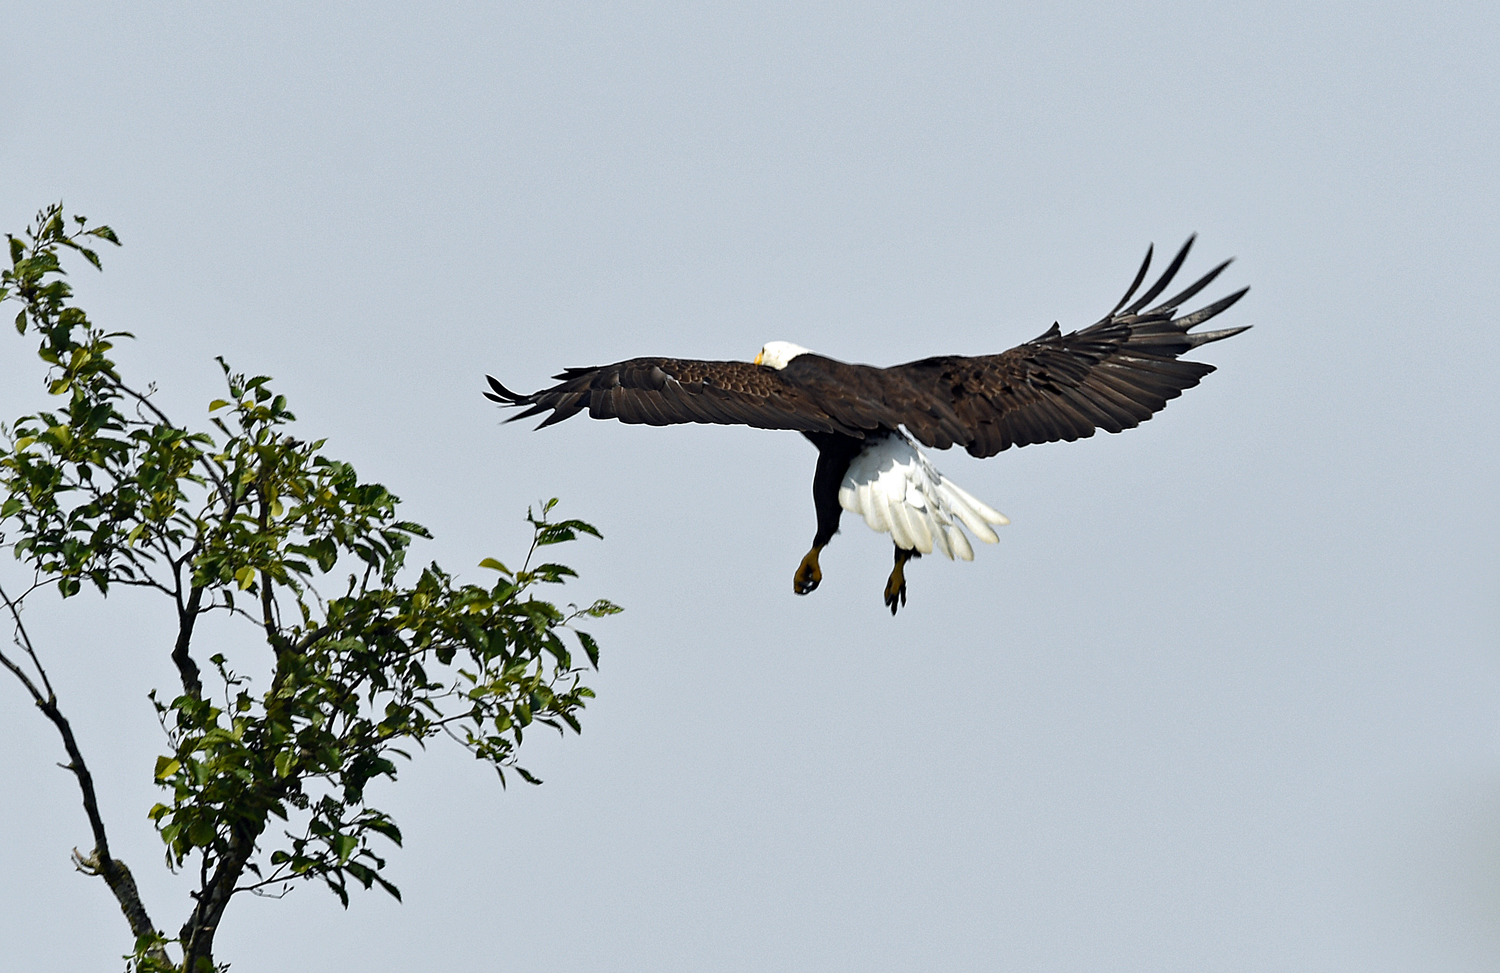 An adult bald eagle is flying toward a small tree with its wings spread and talons dropped for landing.